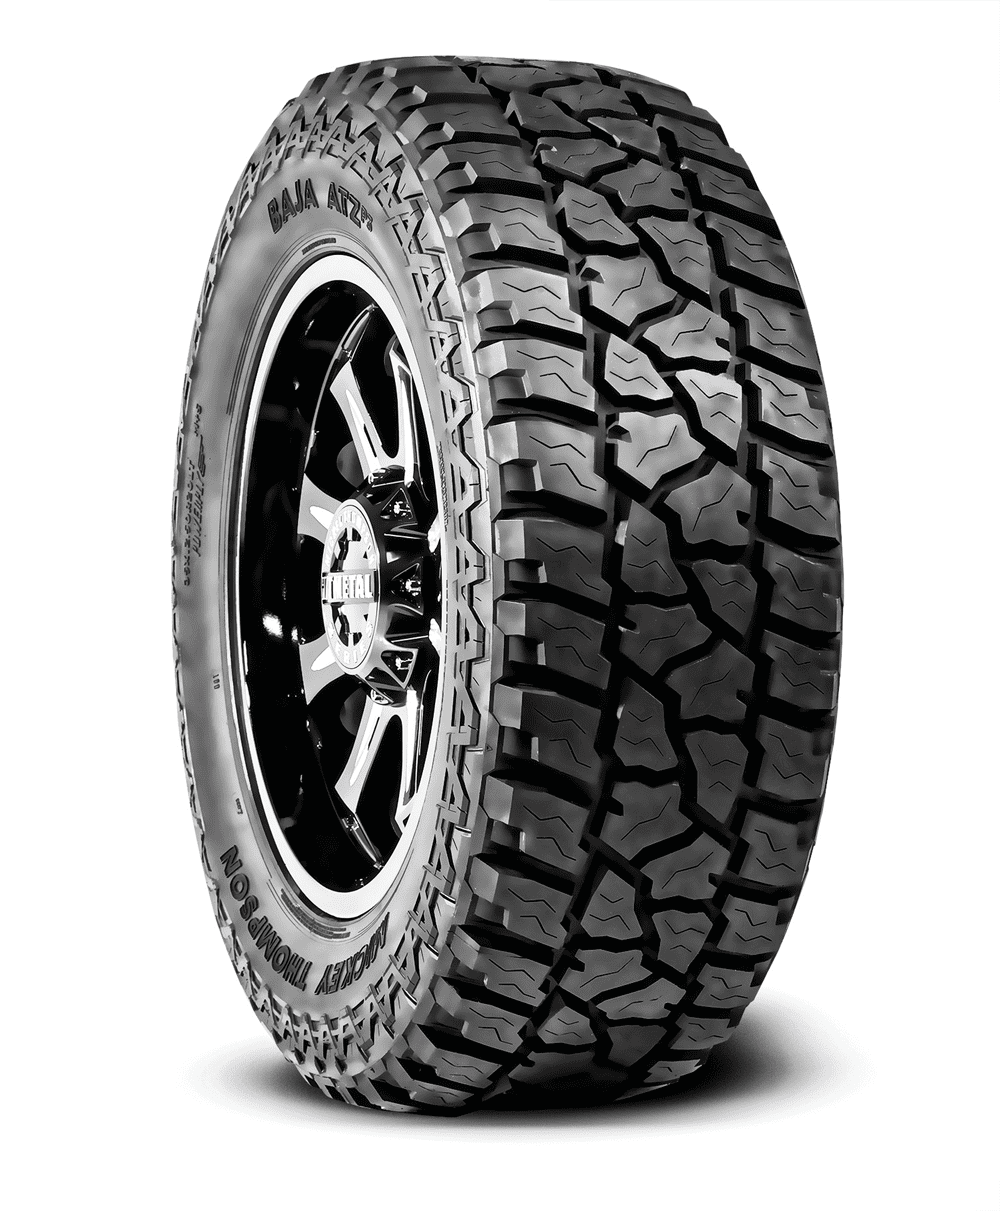 Mickey Thompson Baja ATZ P3 Off-Road Tire